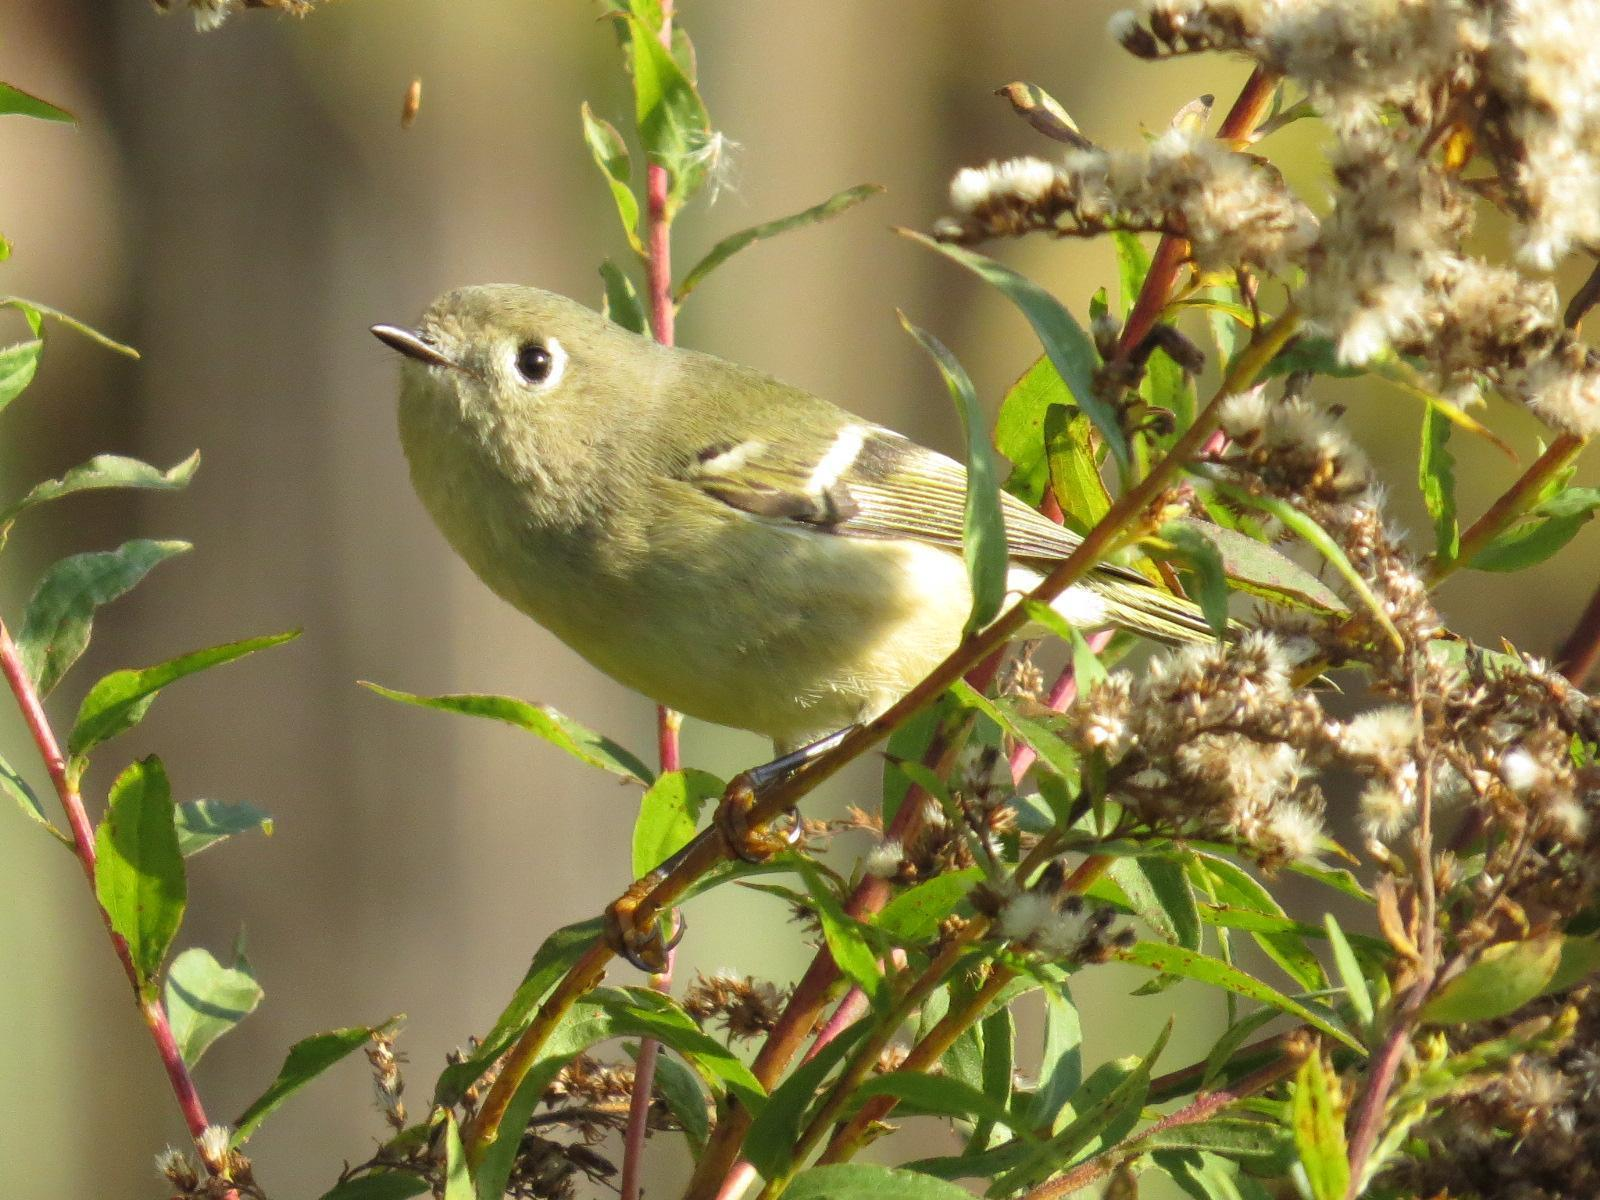 Ruby-crowned Kinglet Photo by Kathy Wooding